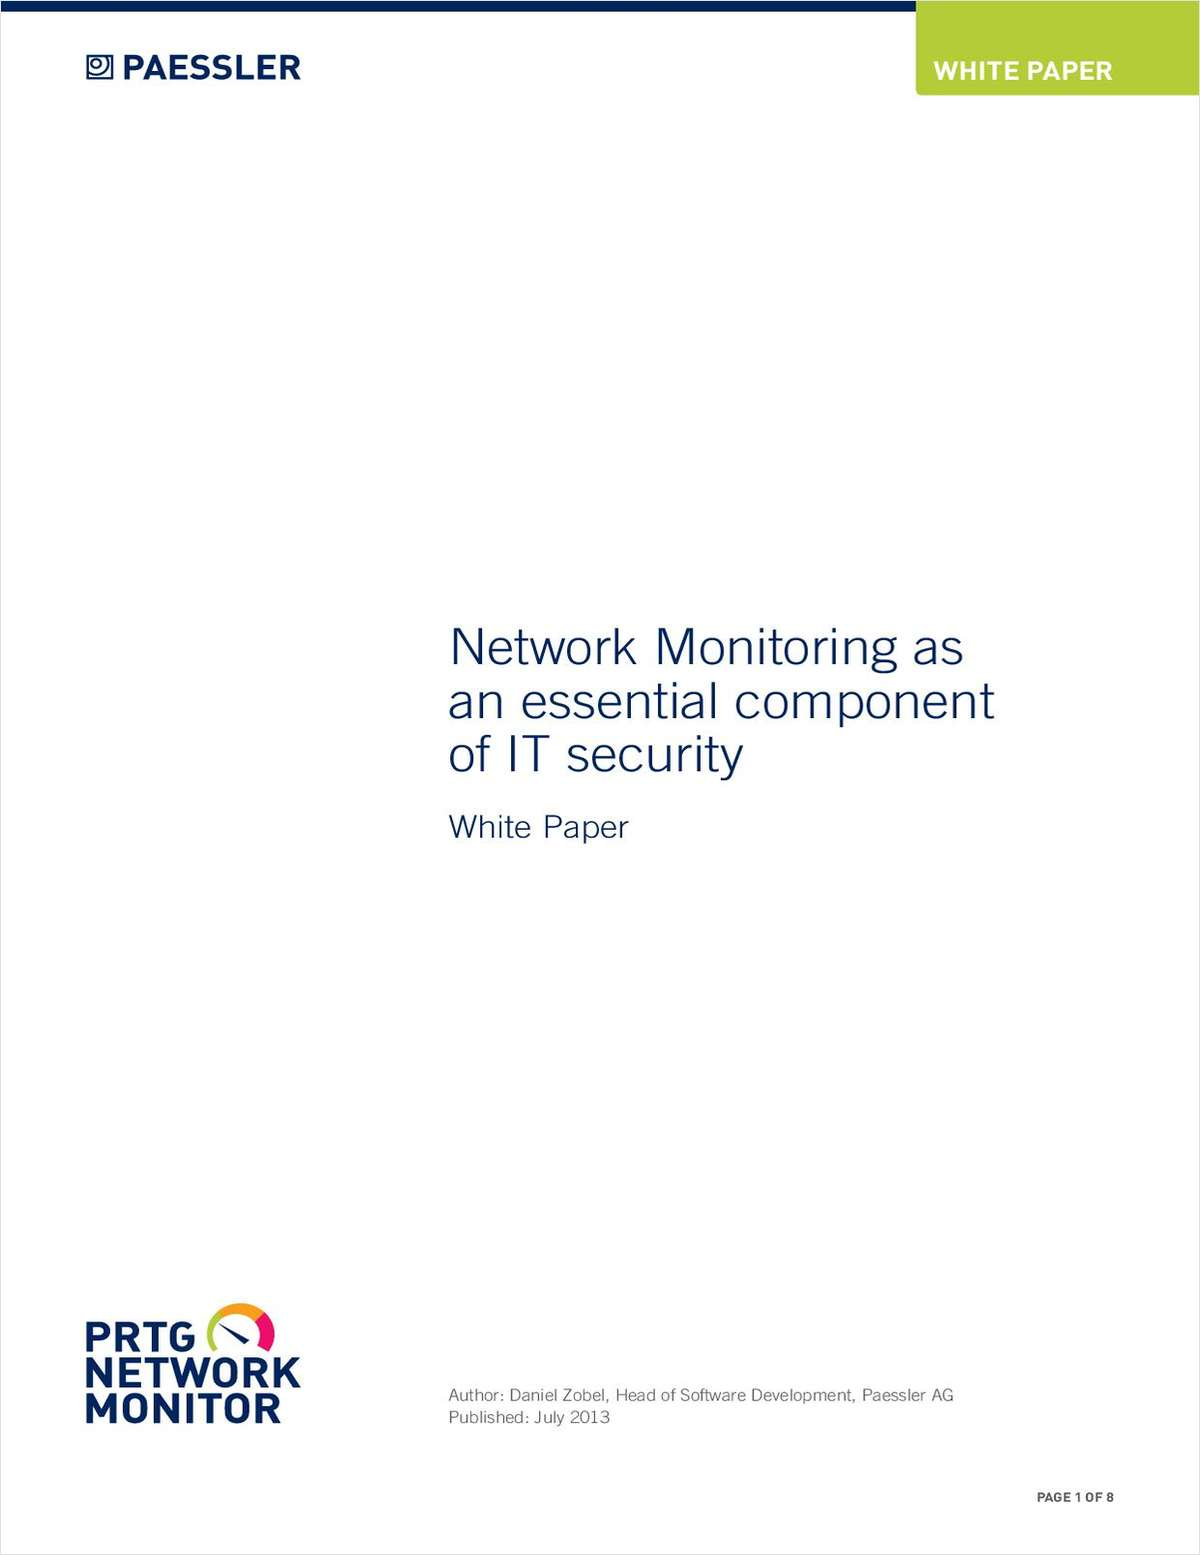 Network Monitoring as an Essential Component of IT Security